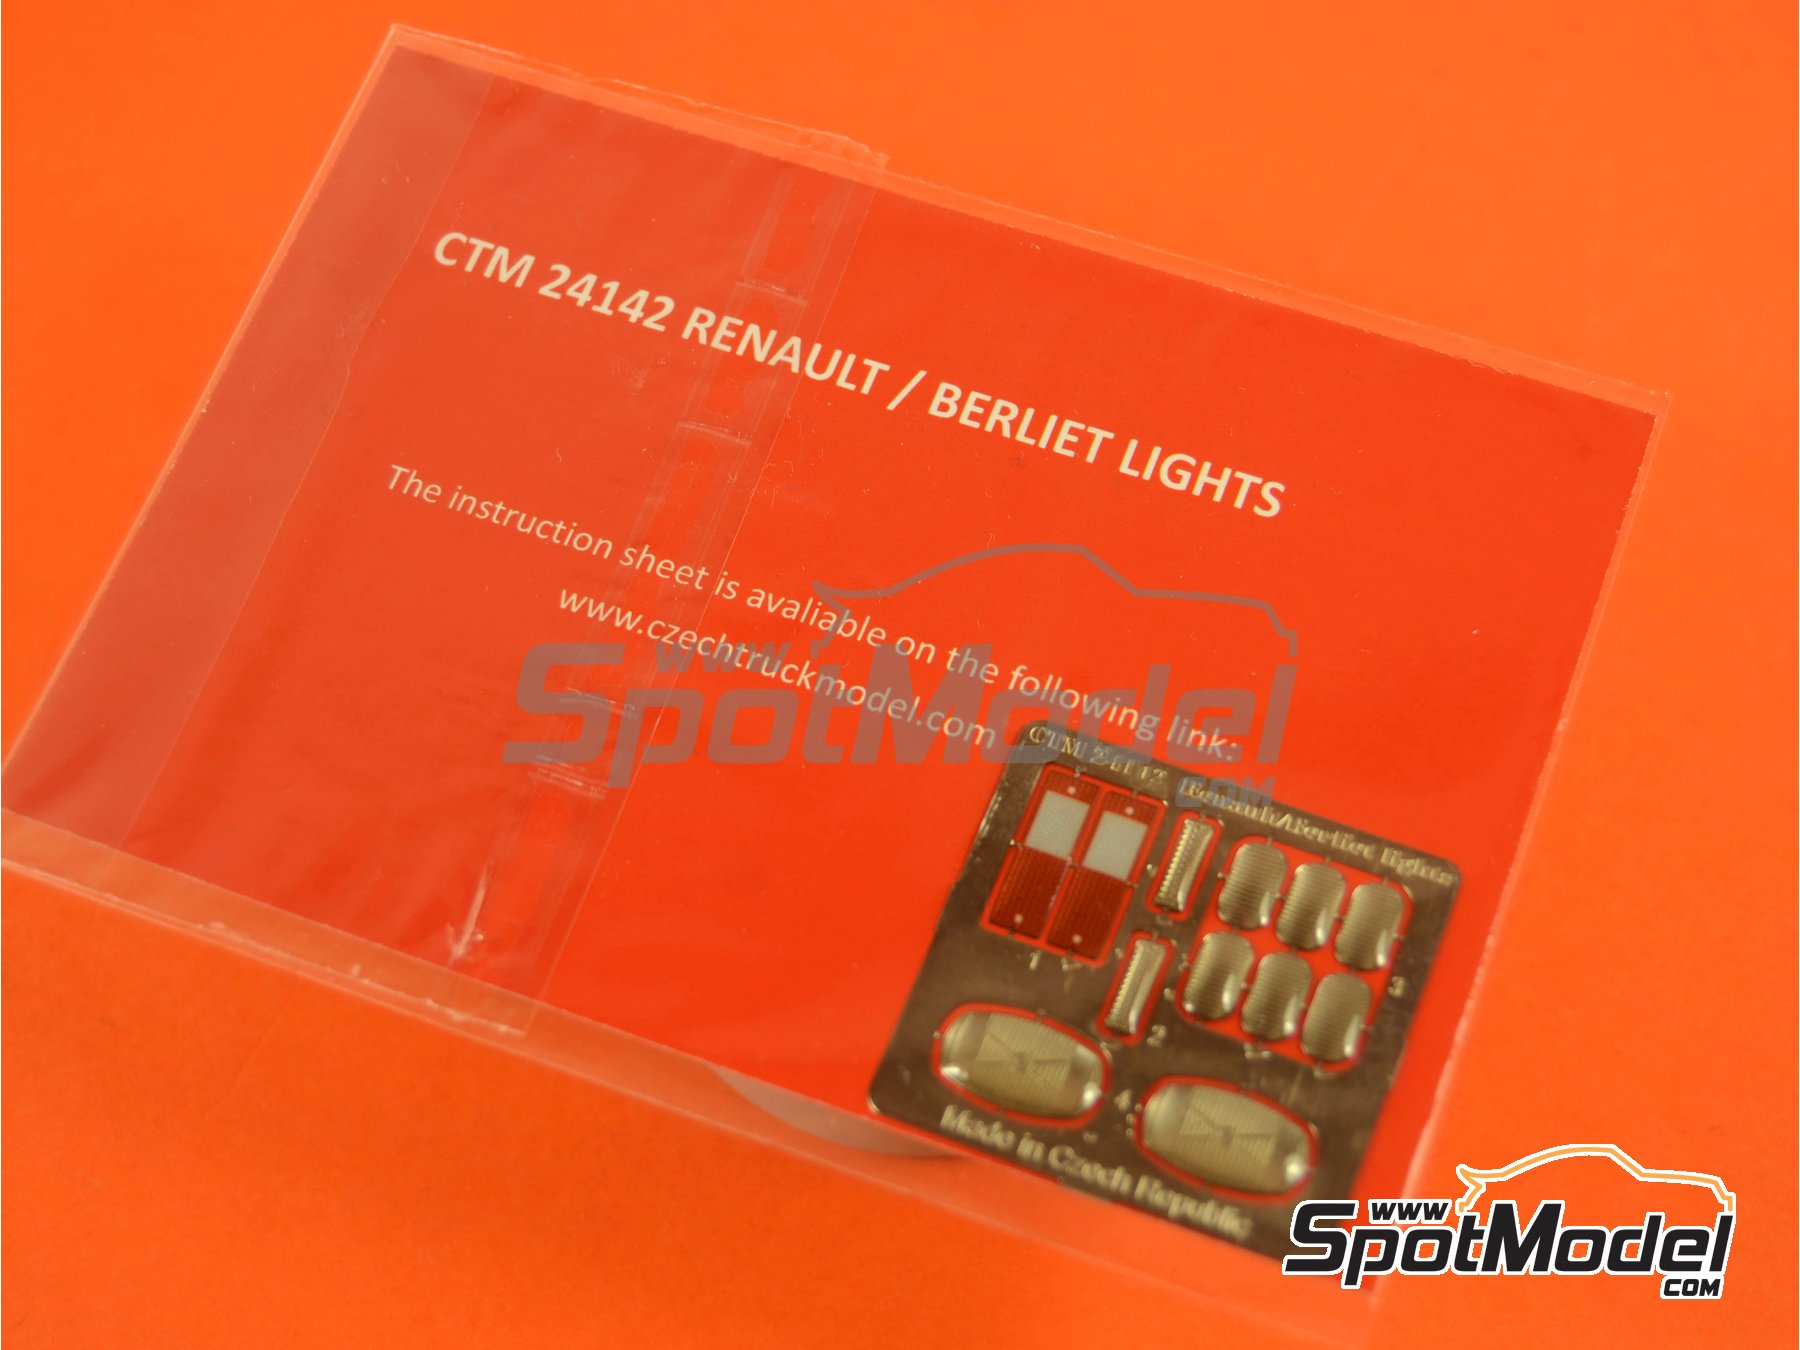 Image 4: Renault / Berliet | Lights in 1/24 scale manufactured by Czech Truck Model (ref. CTM24142)